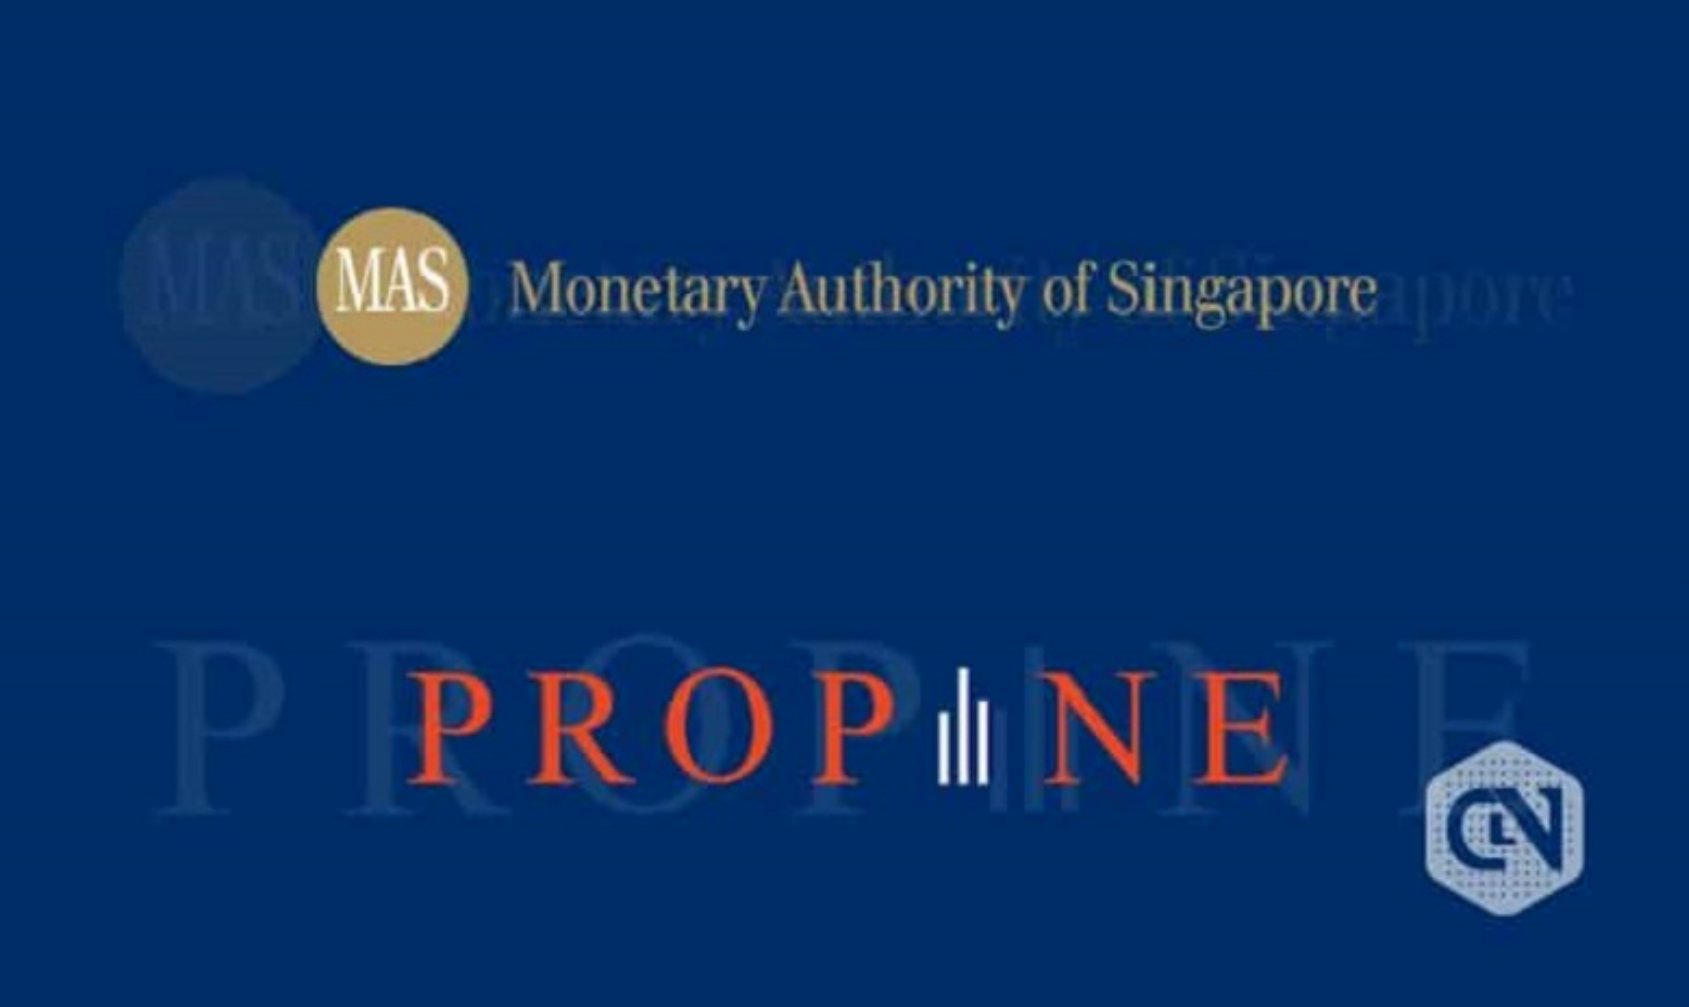 Propine Graduates from MAS' FinTech Regulatory Sandbox, Strengthening Singapore's Lead in Asia's Digital Asset Hub Status